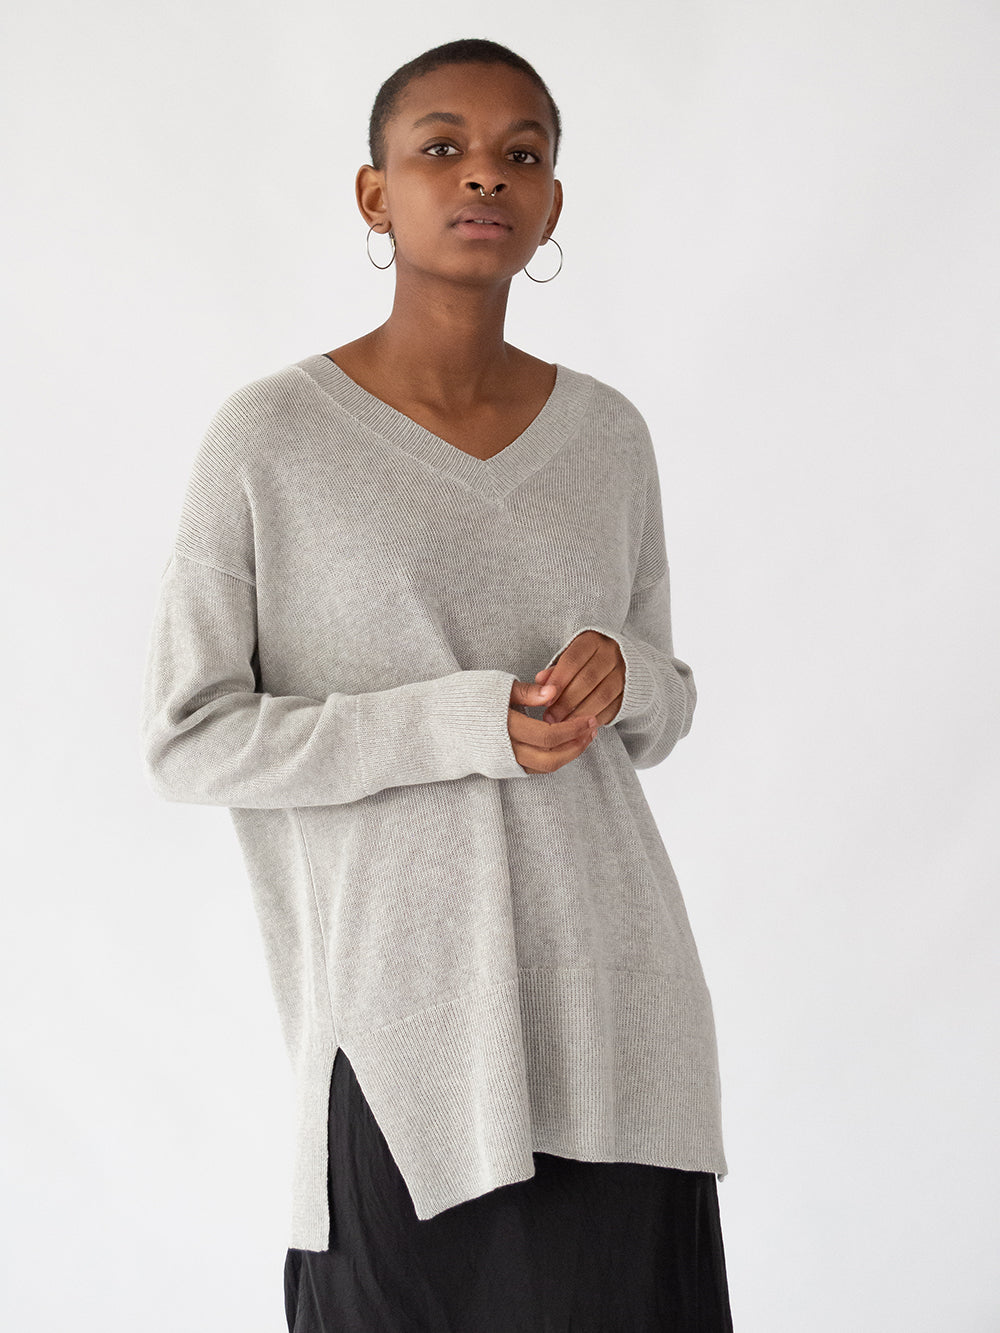 fine knit cotton v-neck in light grey